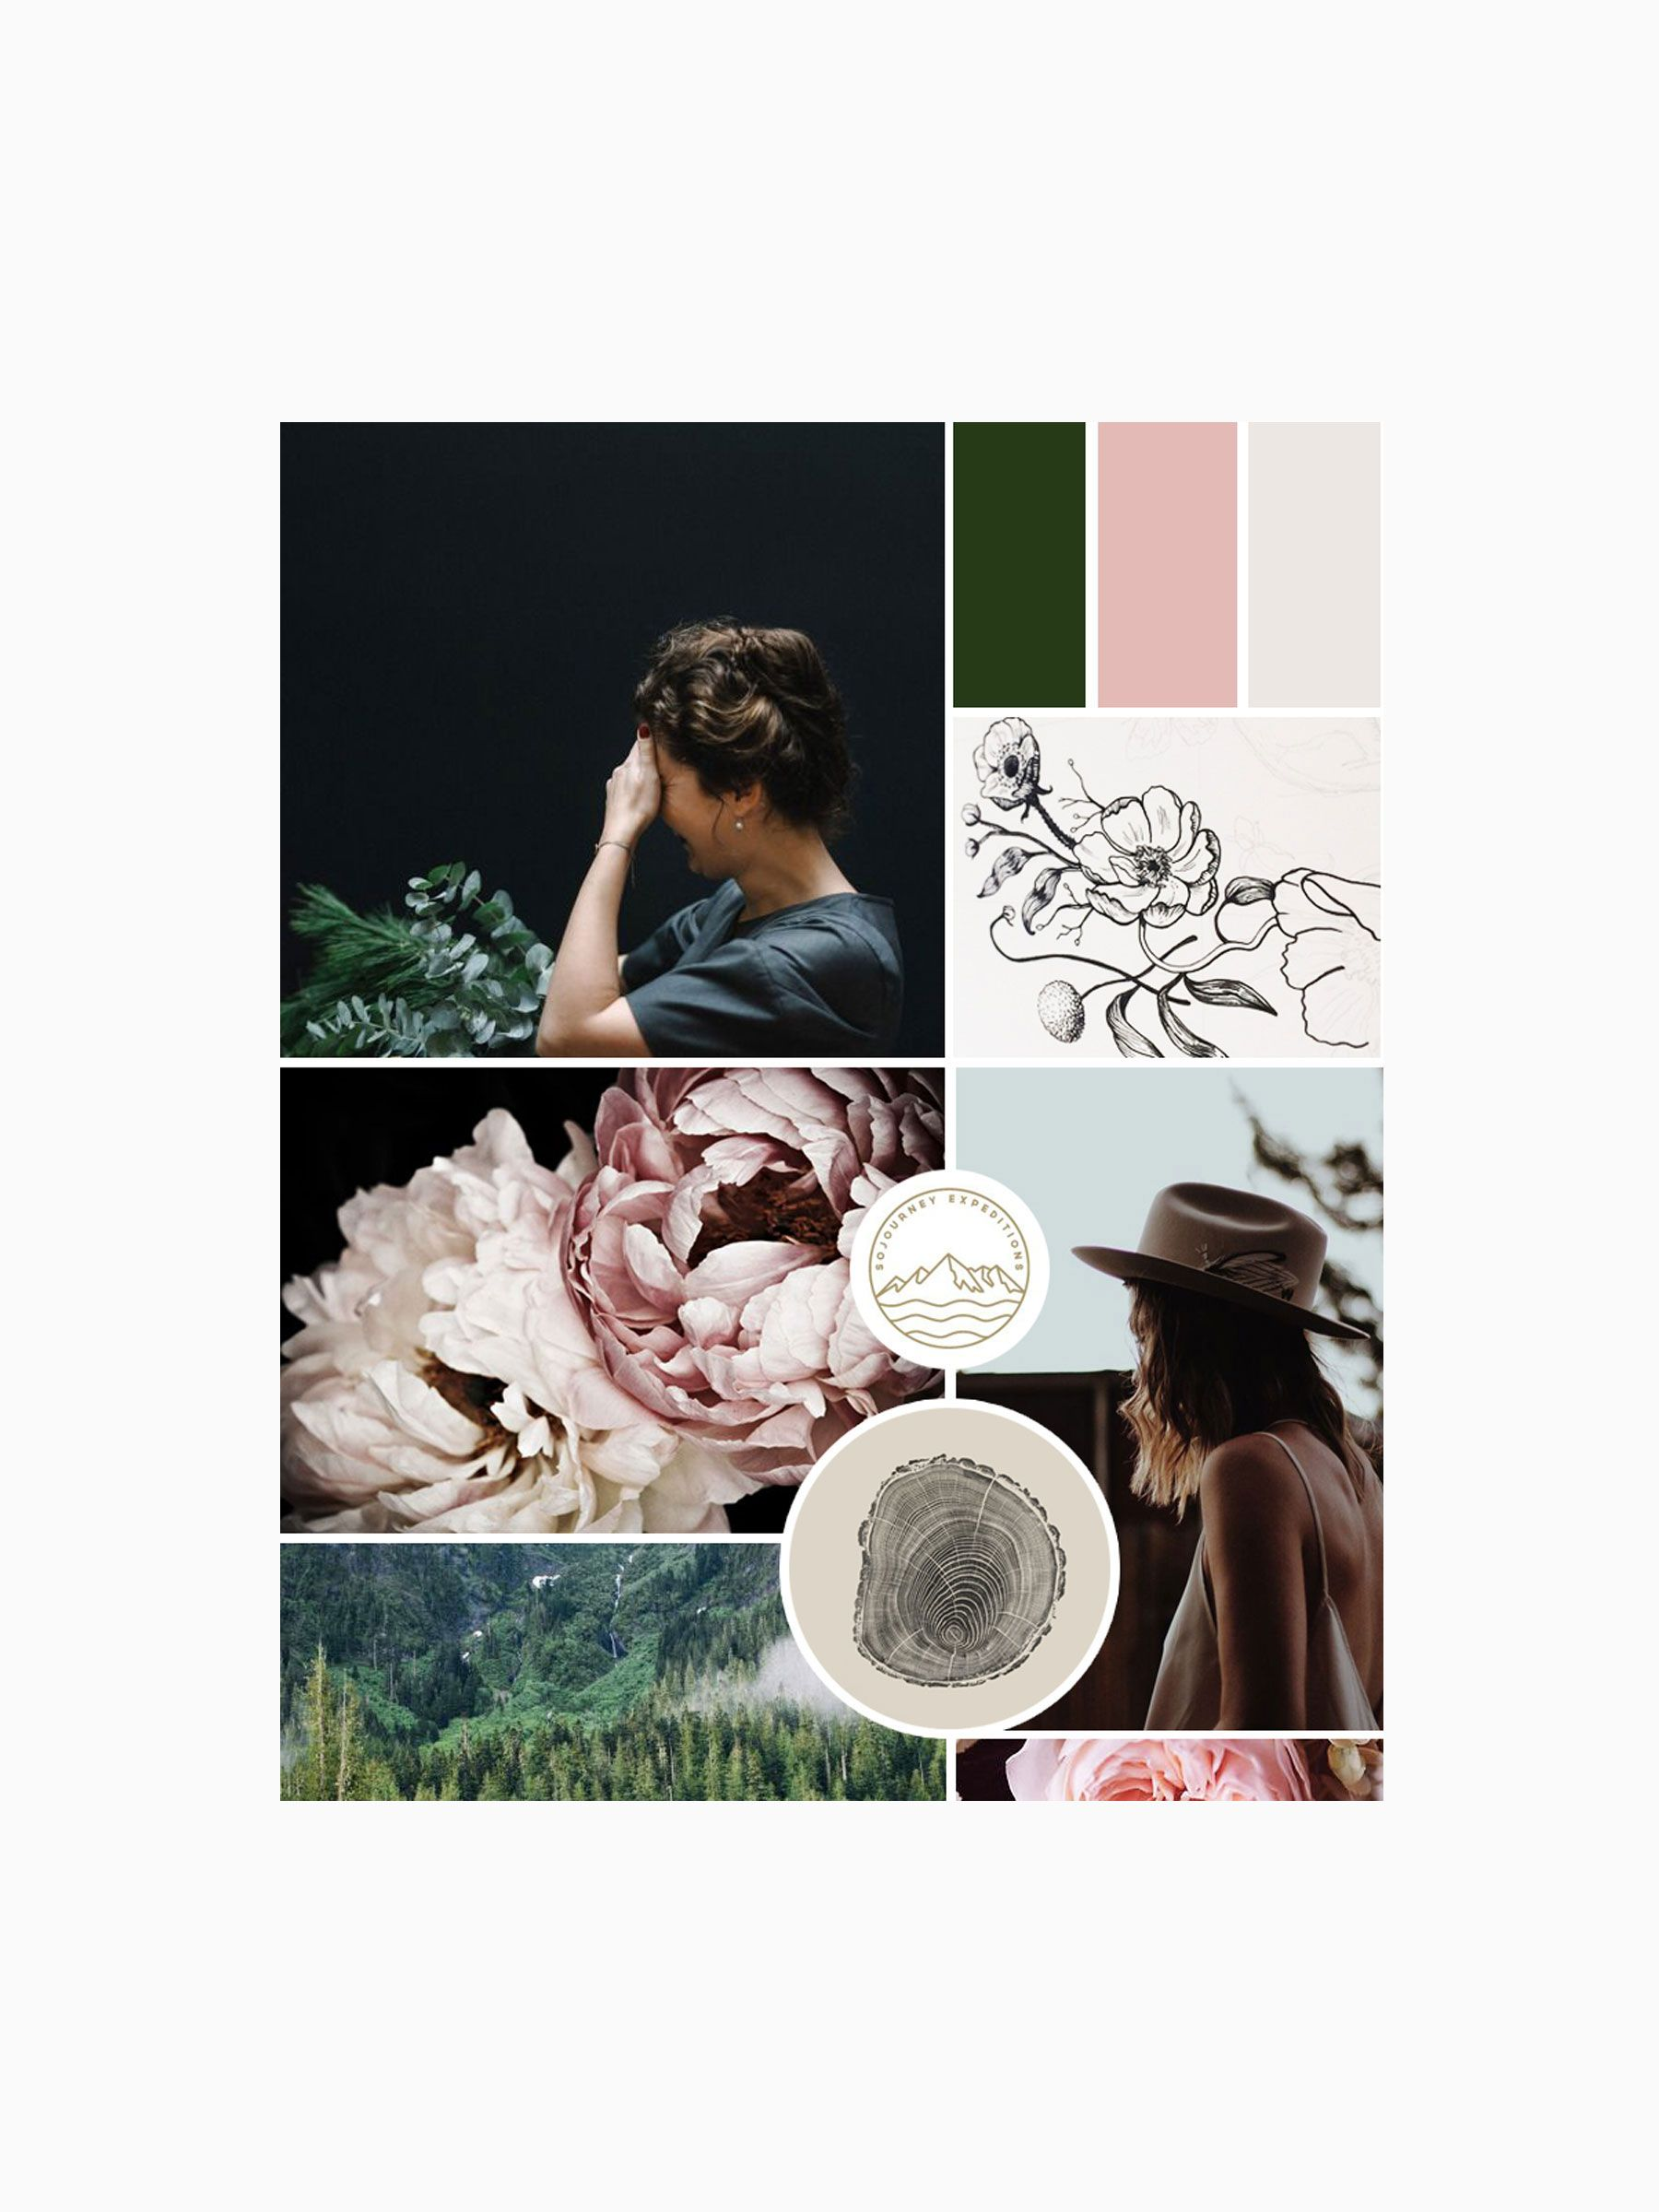 Jane in the Woods Branding Mood Board by Cocorrina [www.cocorrina.com]